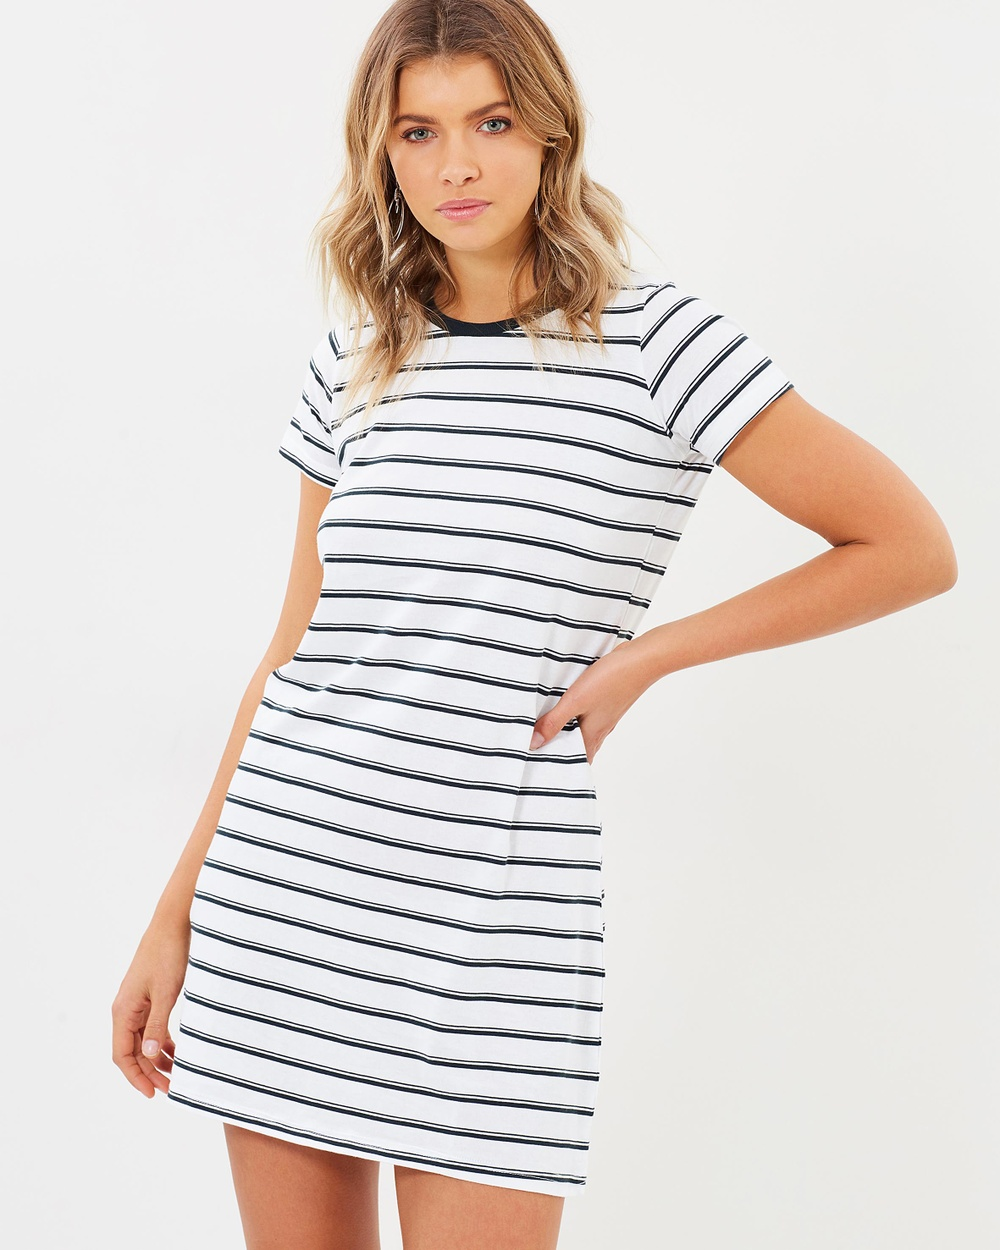 Tee Ink Barton Fisherman Tee Dress Dresses Stripe Barton Fisherman Tee Dress